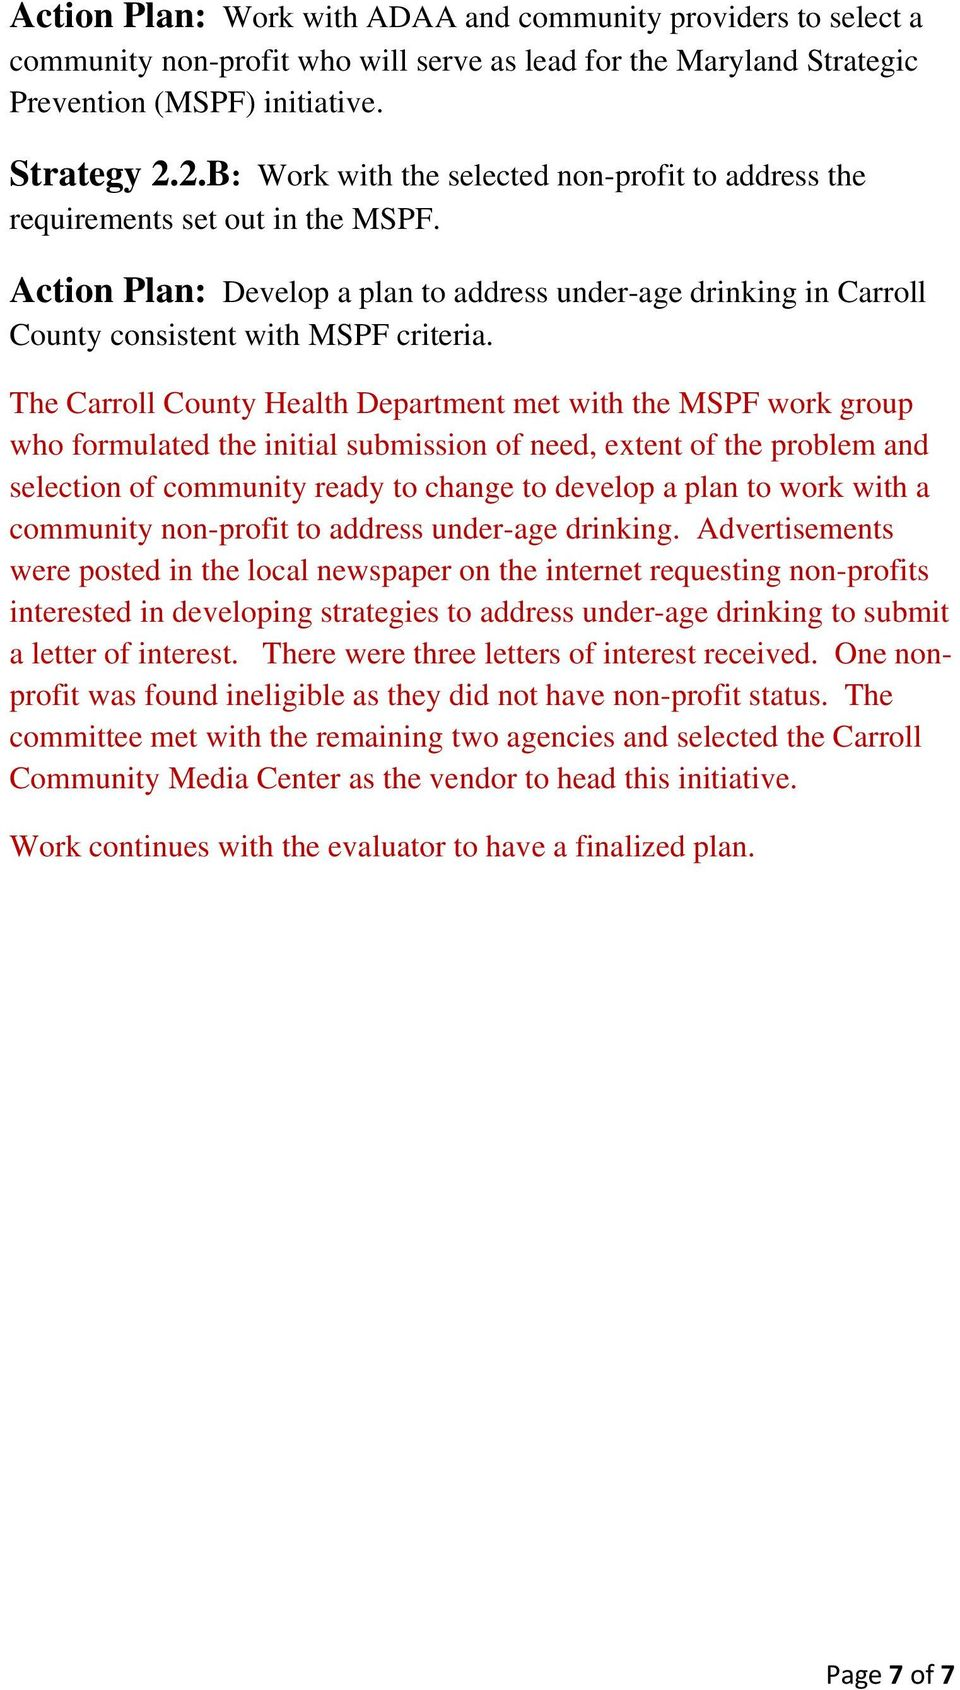 The Carroll County Health Department met with the MSPF work group who formulated the initial submission of need, extent of the problem and selection of community ready to change to develop a plan to